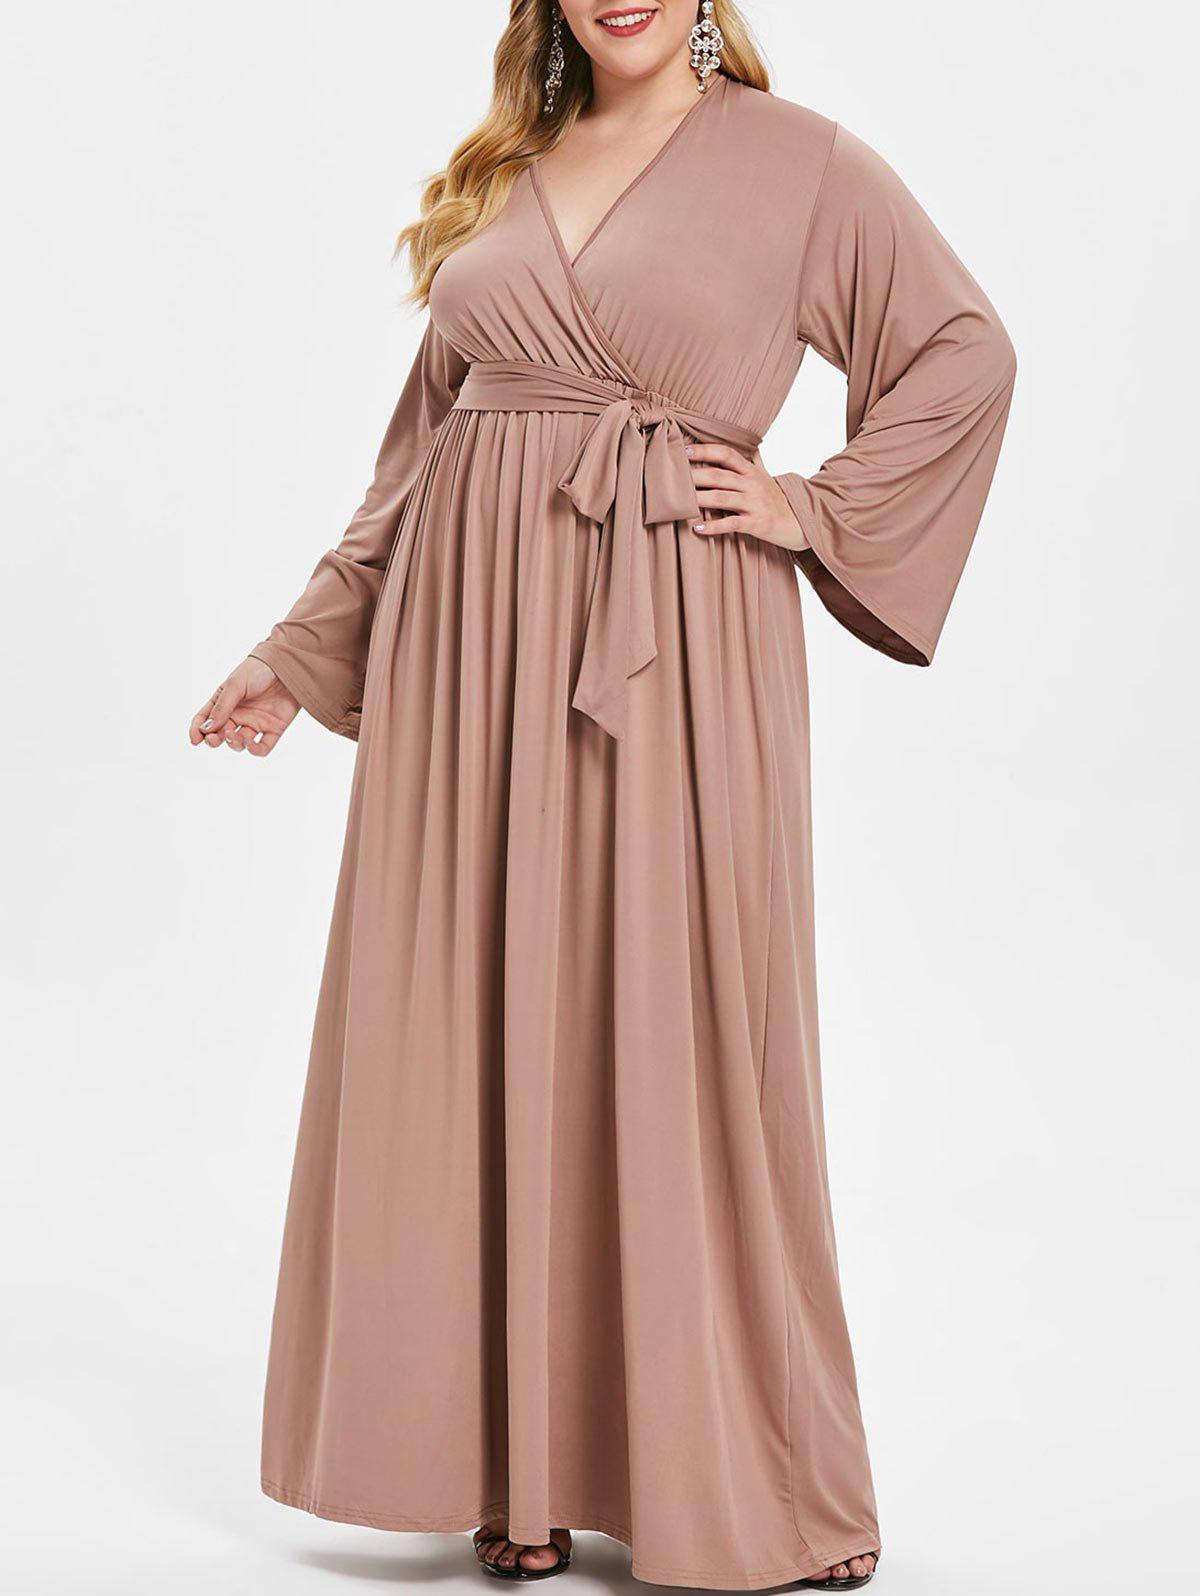 Unique Surplice Neck Plus Size Long Sleeve Maxi Dress with Belt